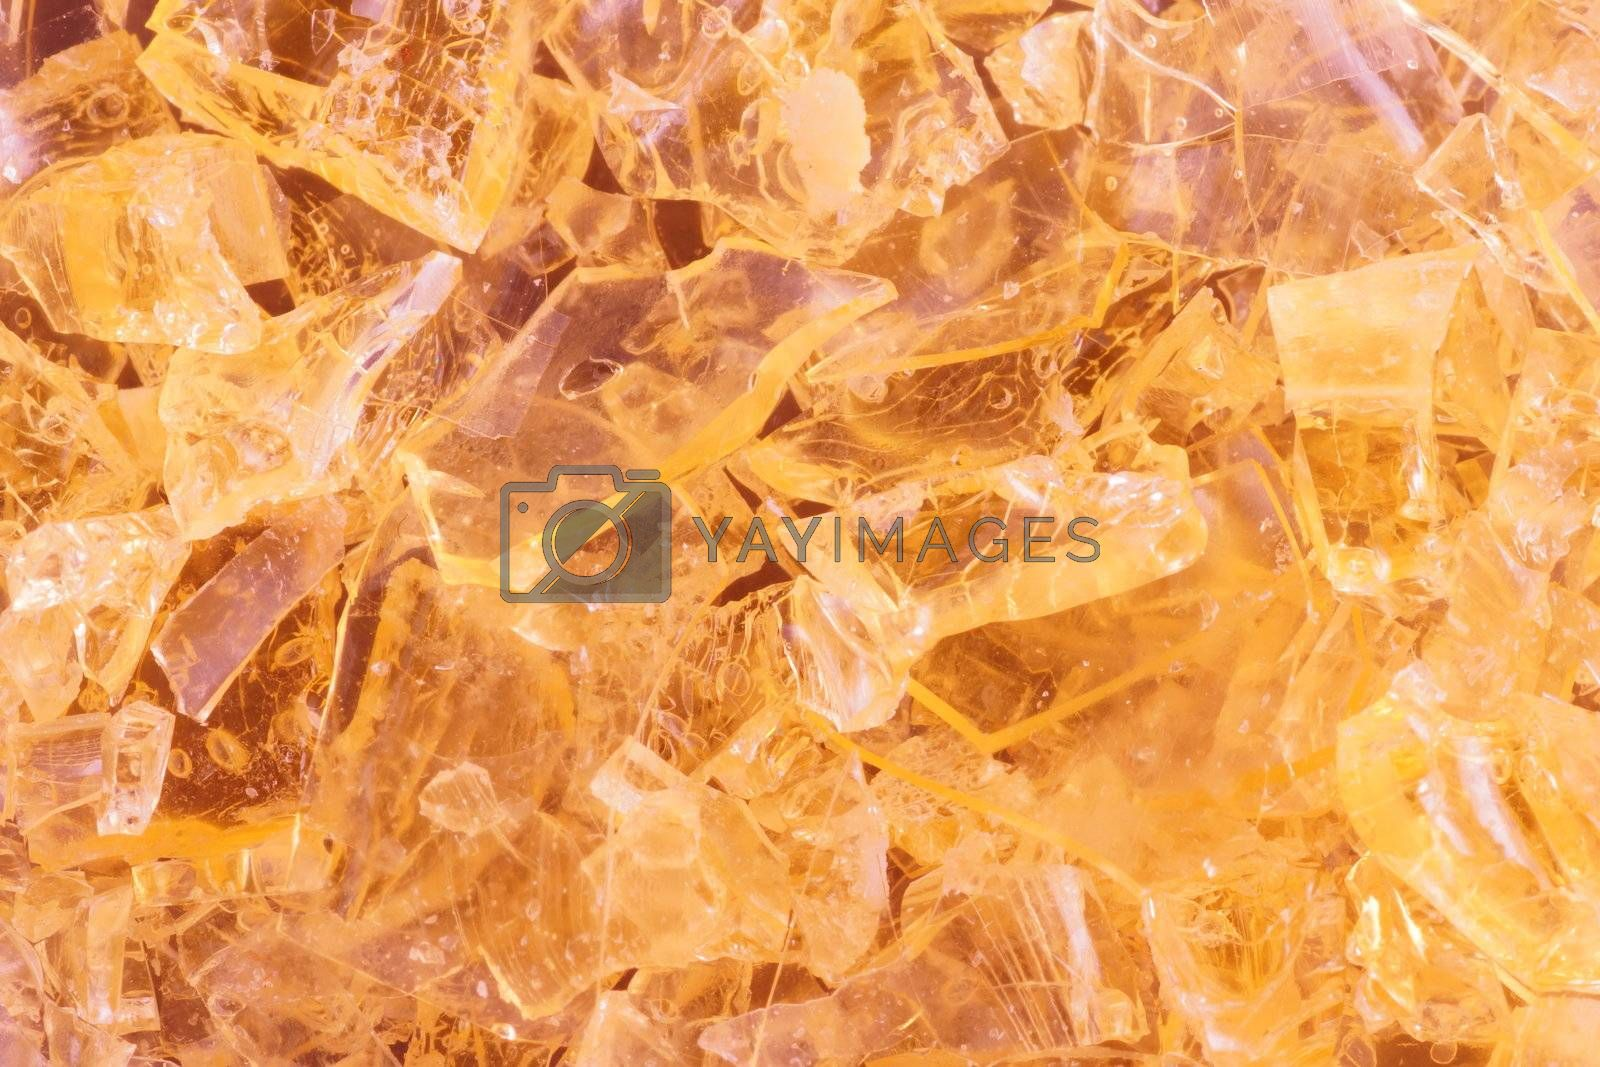 close-up shot of a colorful crystalbackground